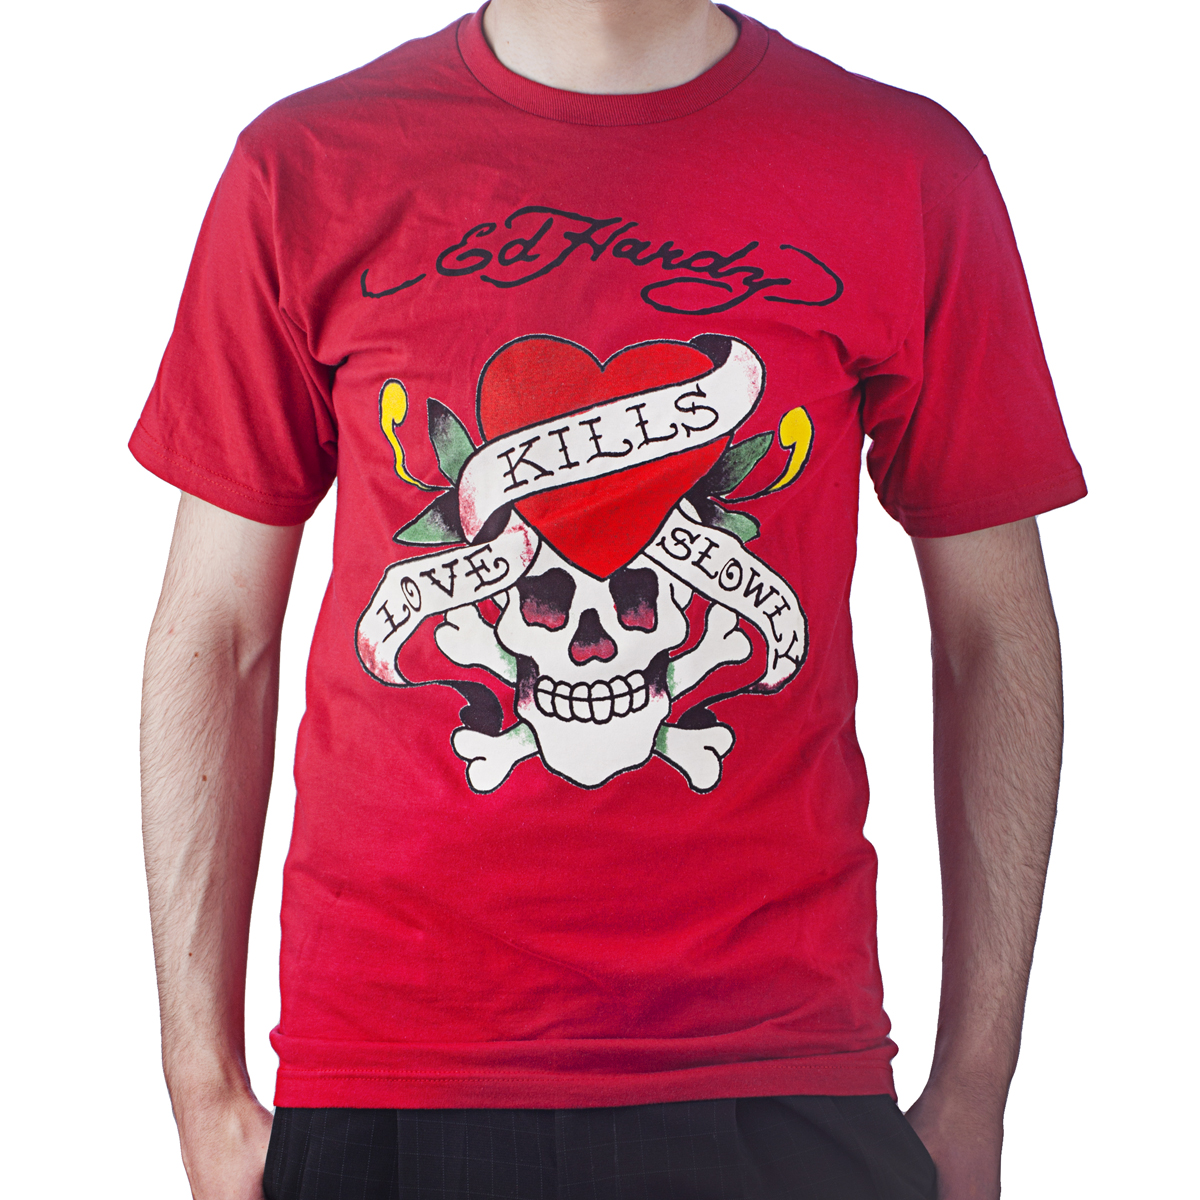 Ed Hardy Mens Love Kills Slowly Graphic Tee Shirt - Red